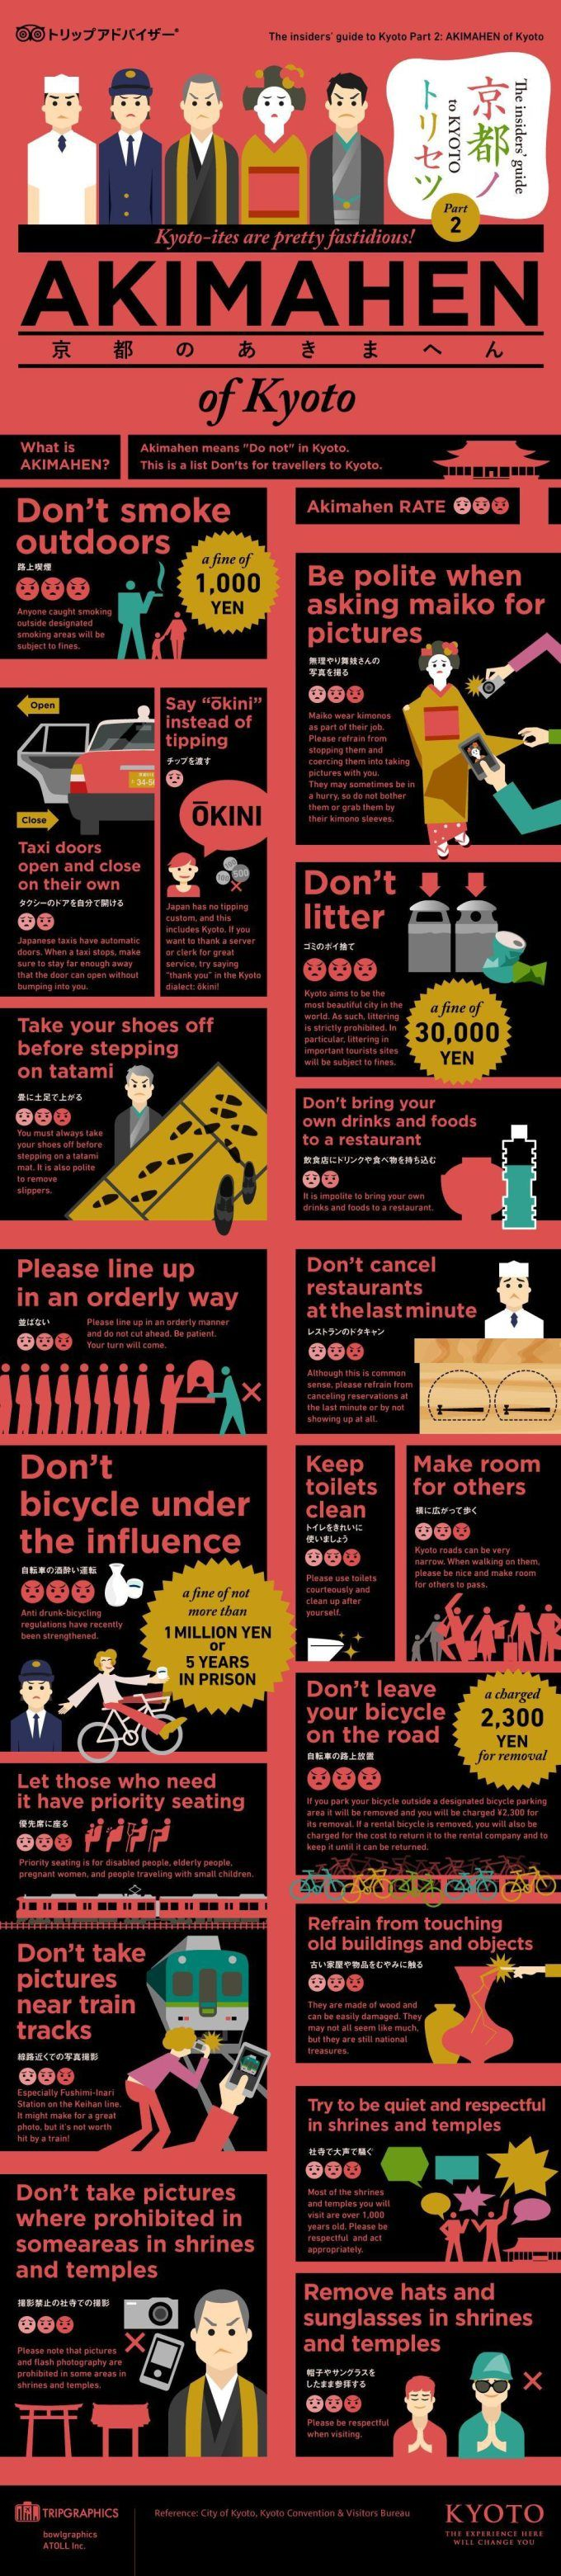 Akimahen of Kyoto infographic Be a good tourist when in Japan Use your